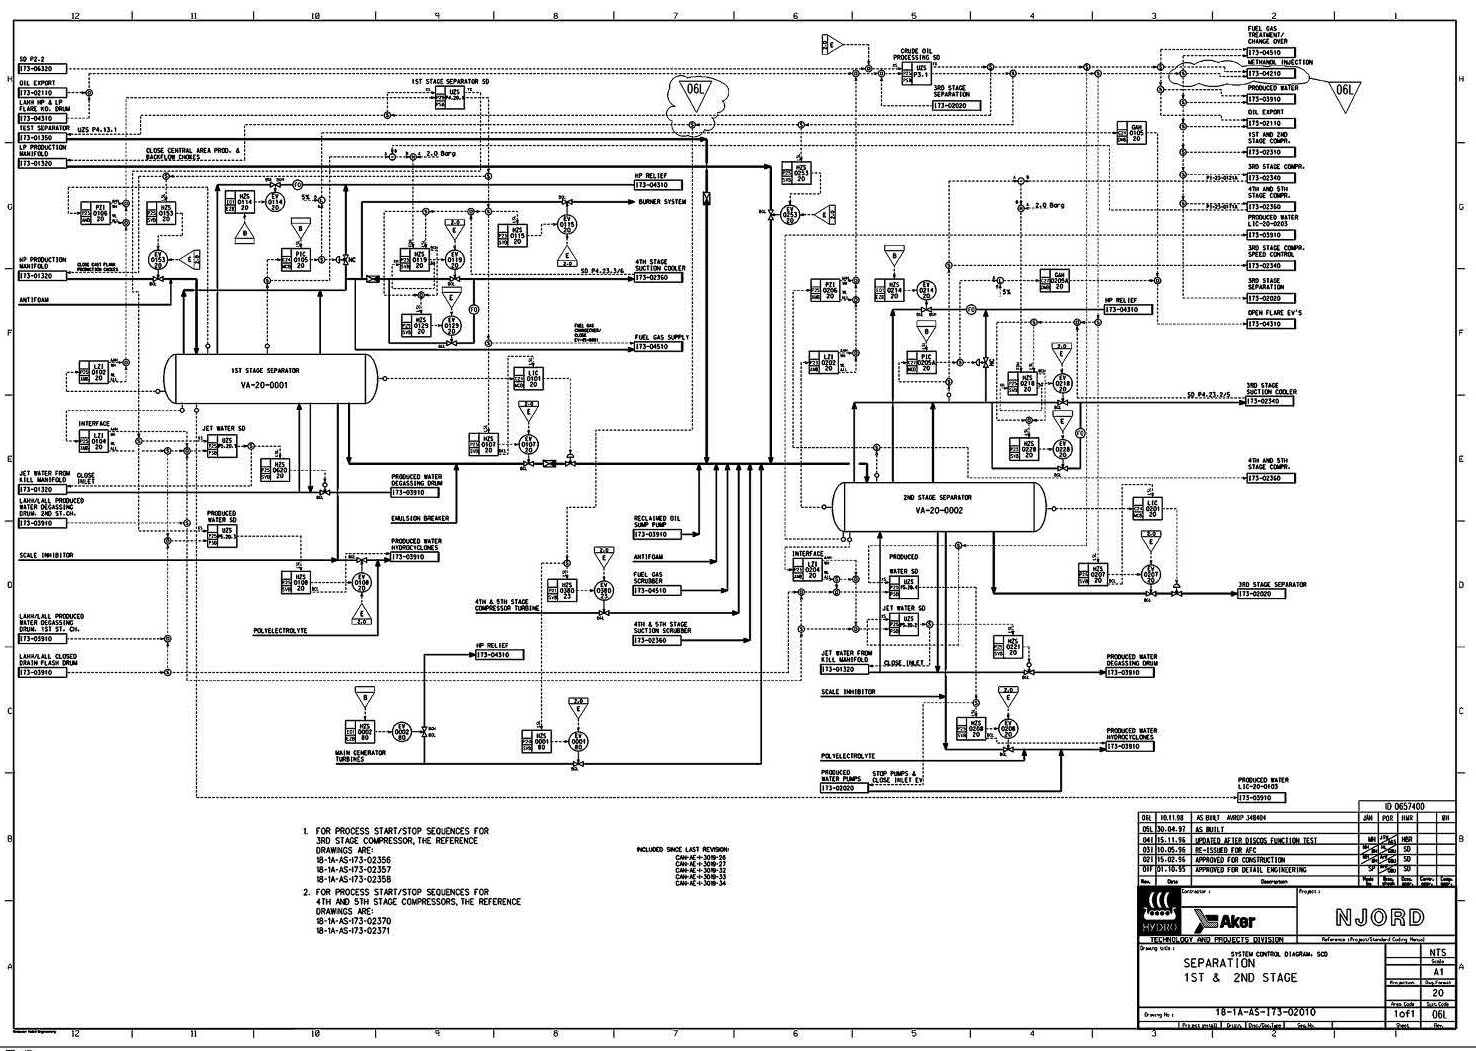 Fuel System Schematic Color Code on Natural Gas Engine Generator